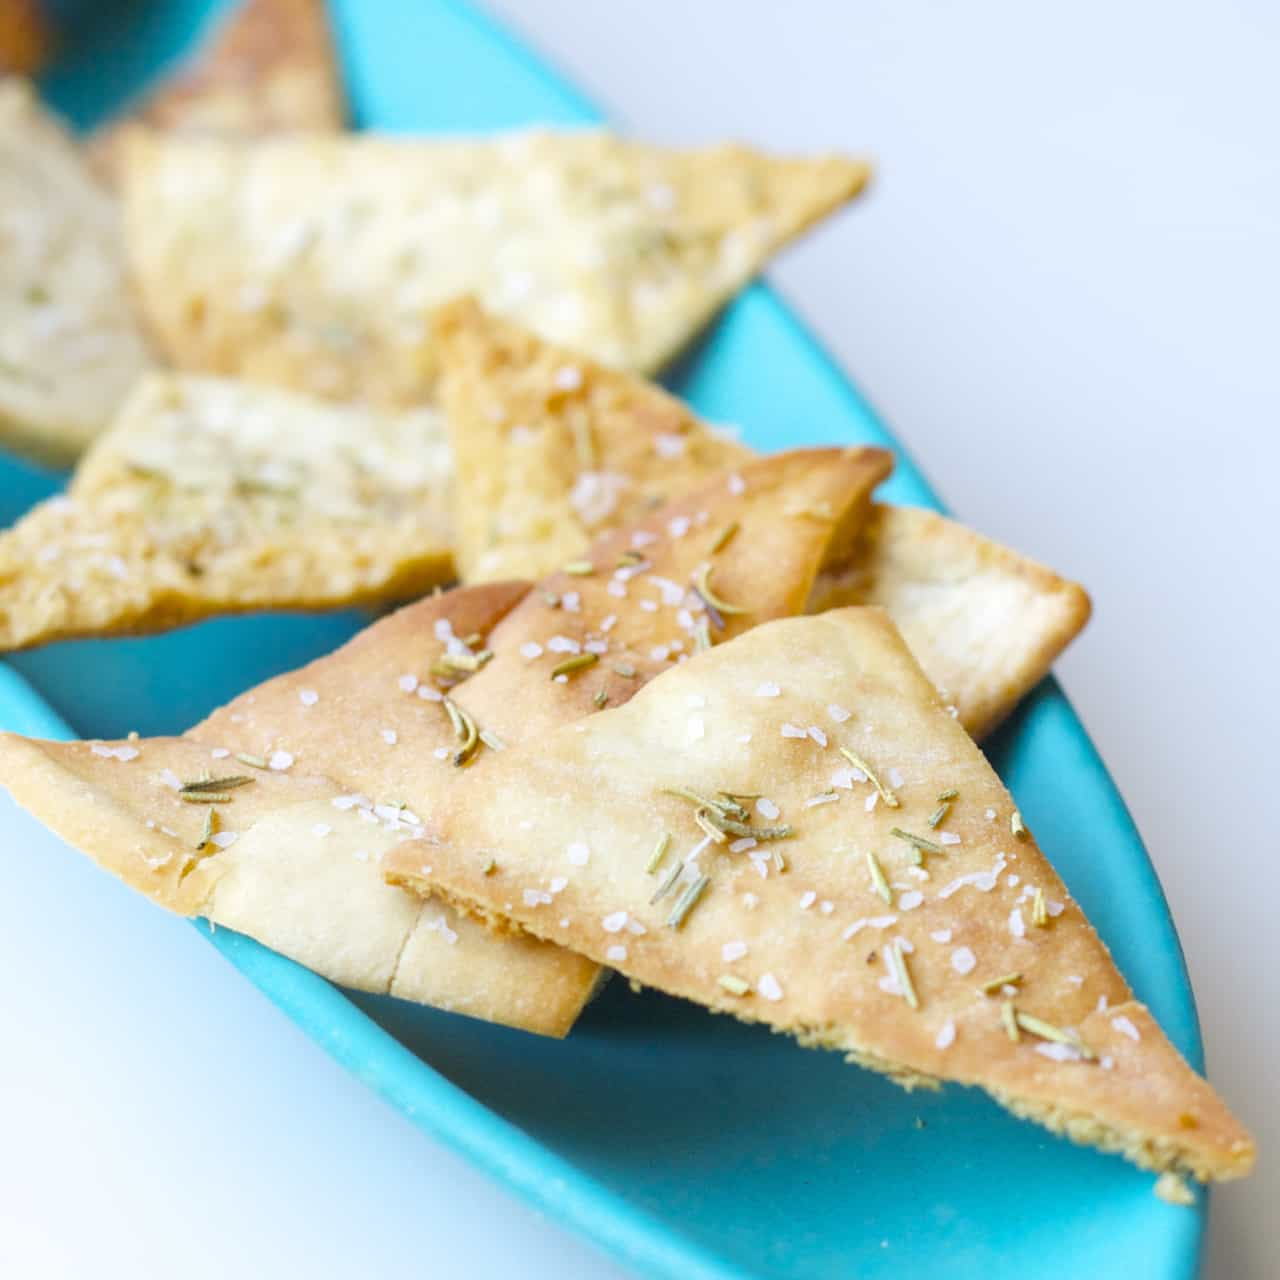 These homemade pita chips are seasoned with salt and rosemary and baked to crispy perfection. An easy snack to make at home!